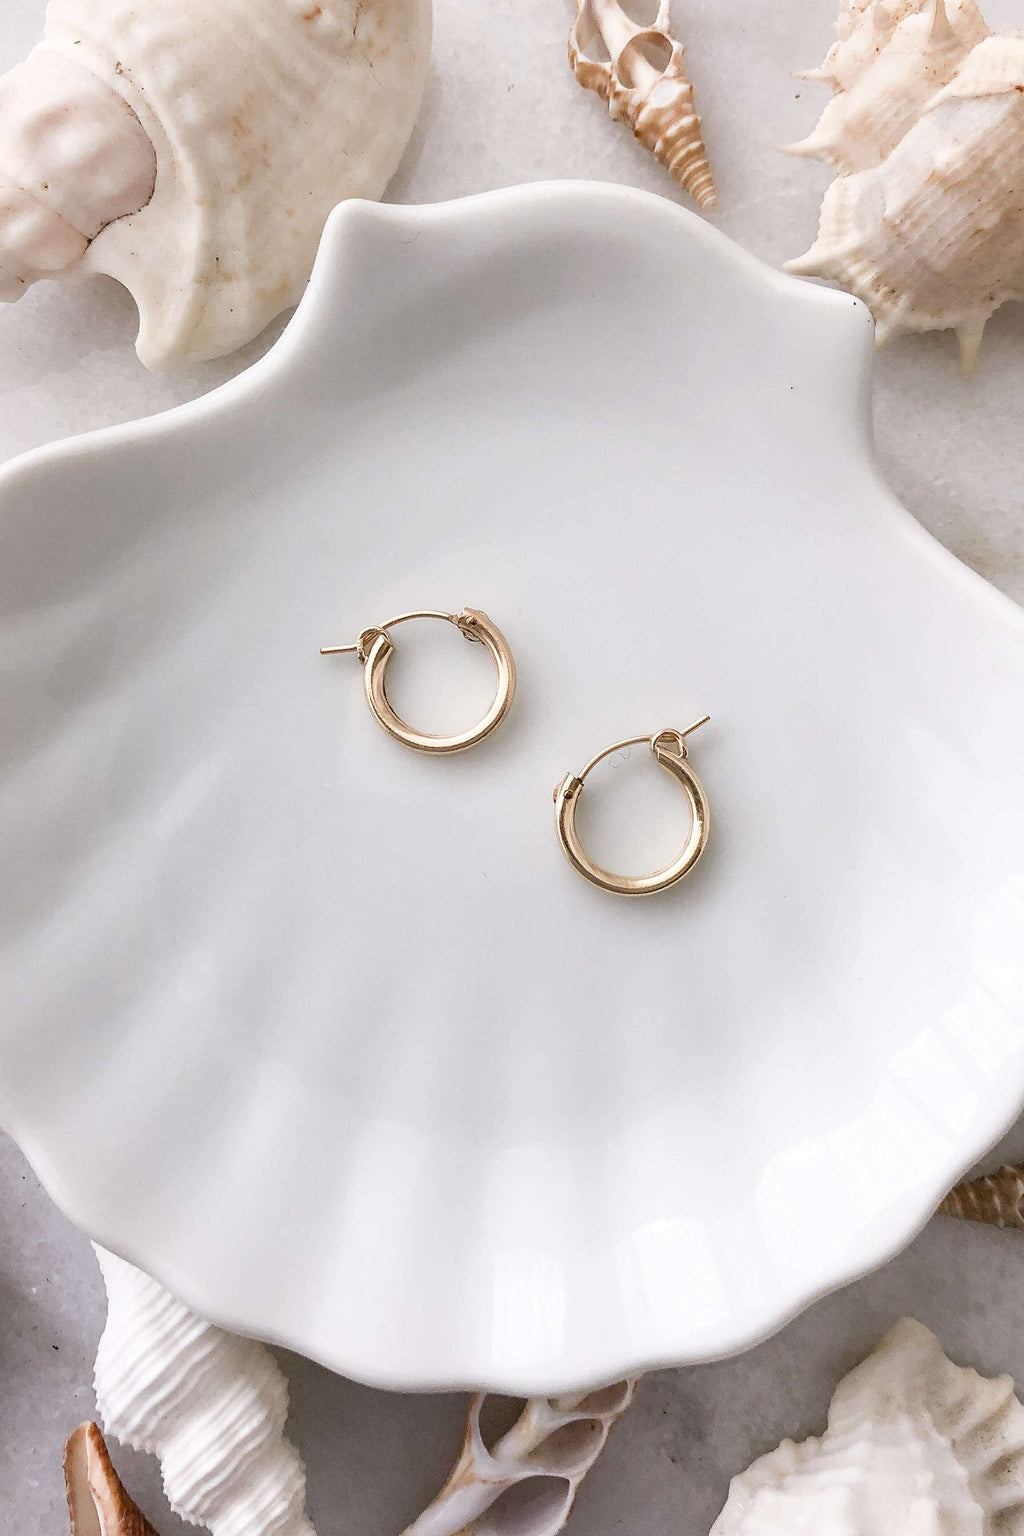 Round Click Hoops - Gold Fill, Earrings with  by Lunarsea Designs